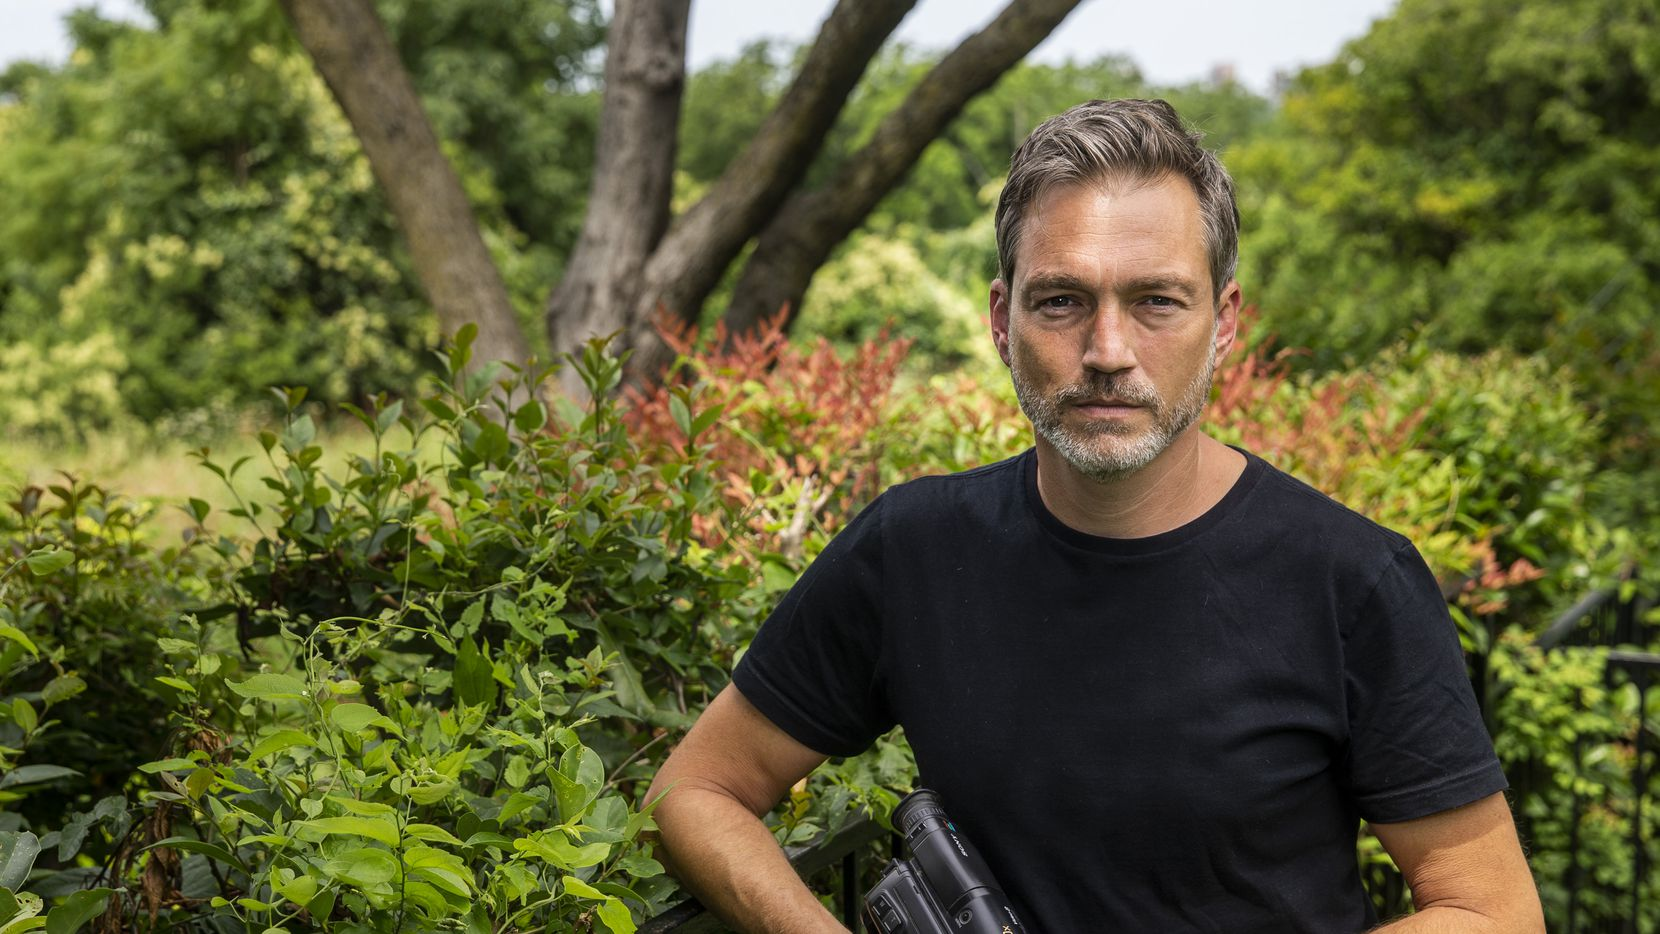 """Filmmaker Miles Hargrove holds the Sony Video8 camcorder he used to film the 25-year-old footage in his new film, """"Miracle Fishing,"""" during a portrait session at his home in Dallas on Thursday, May 28, 2020."""